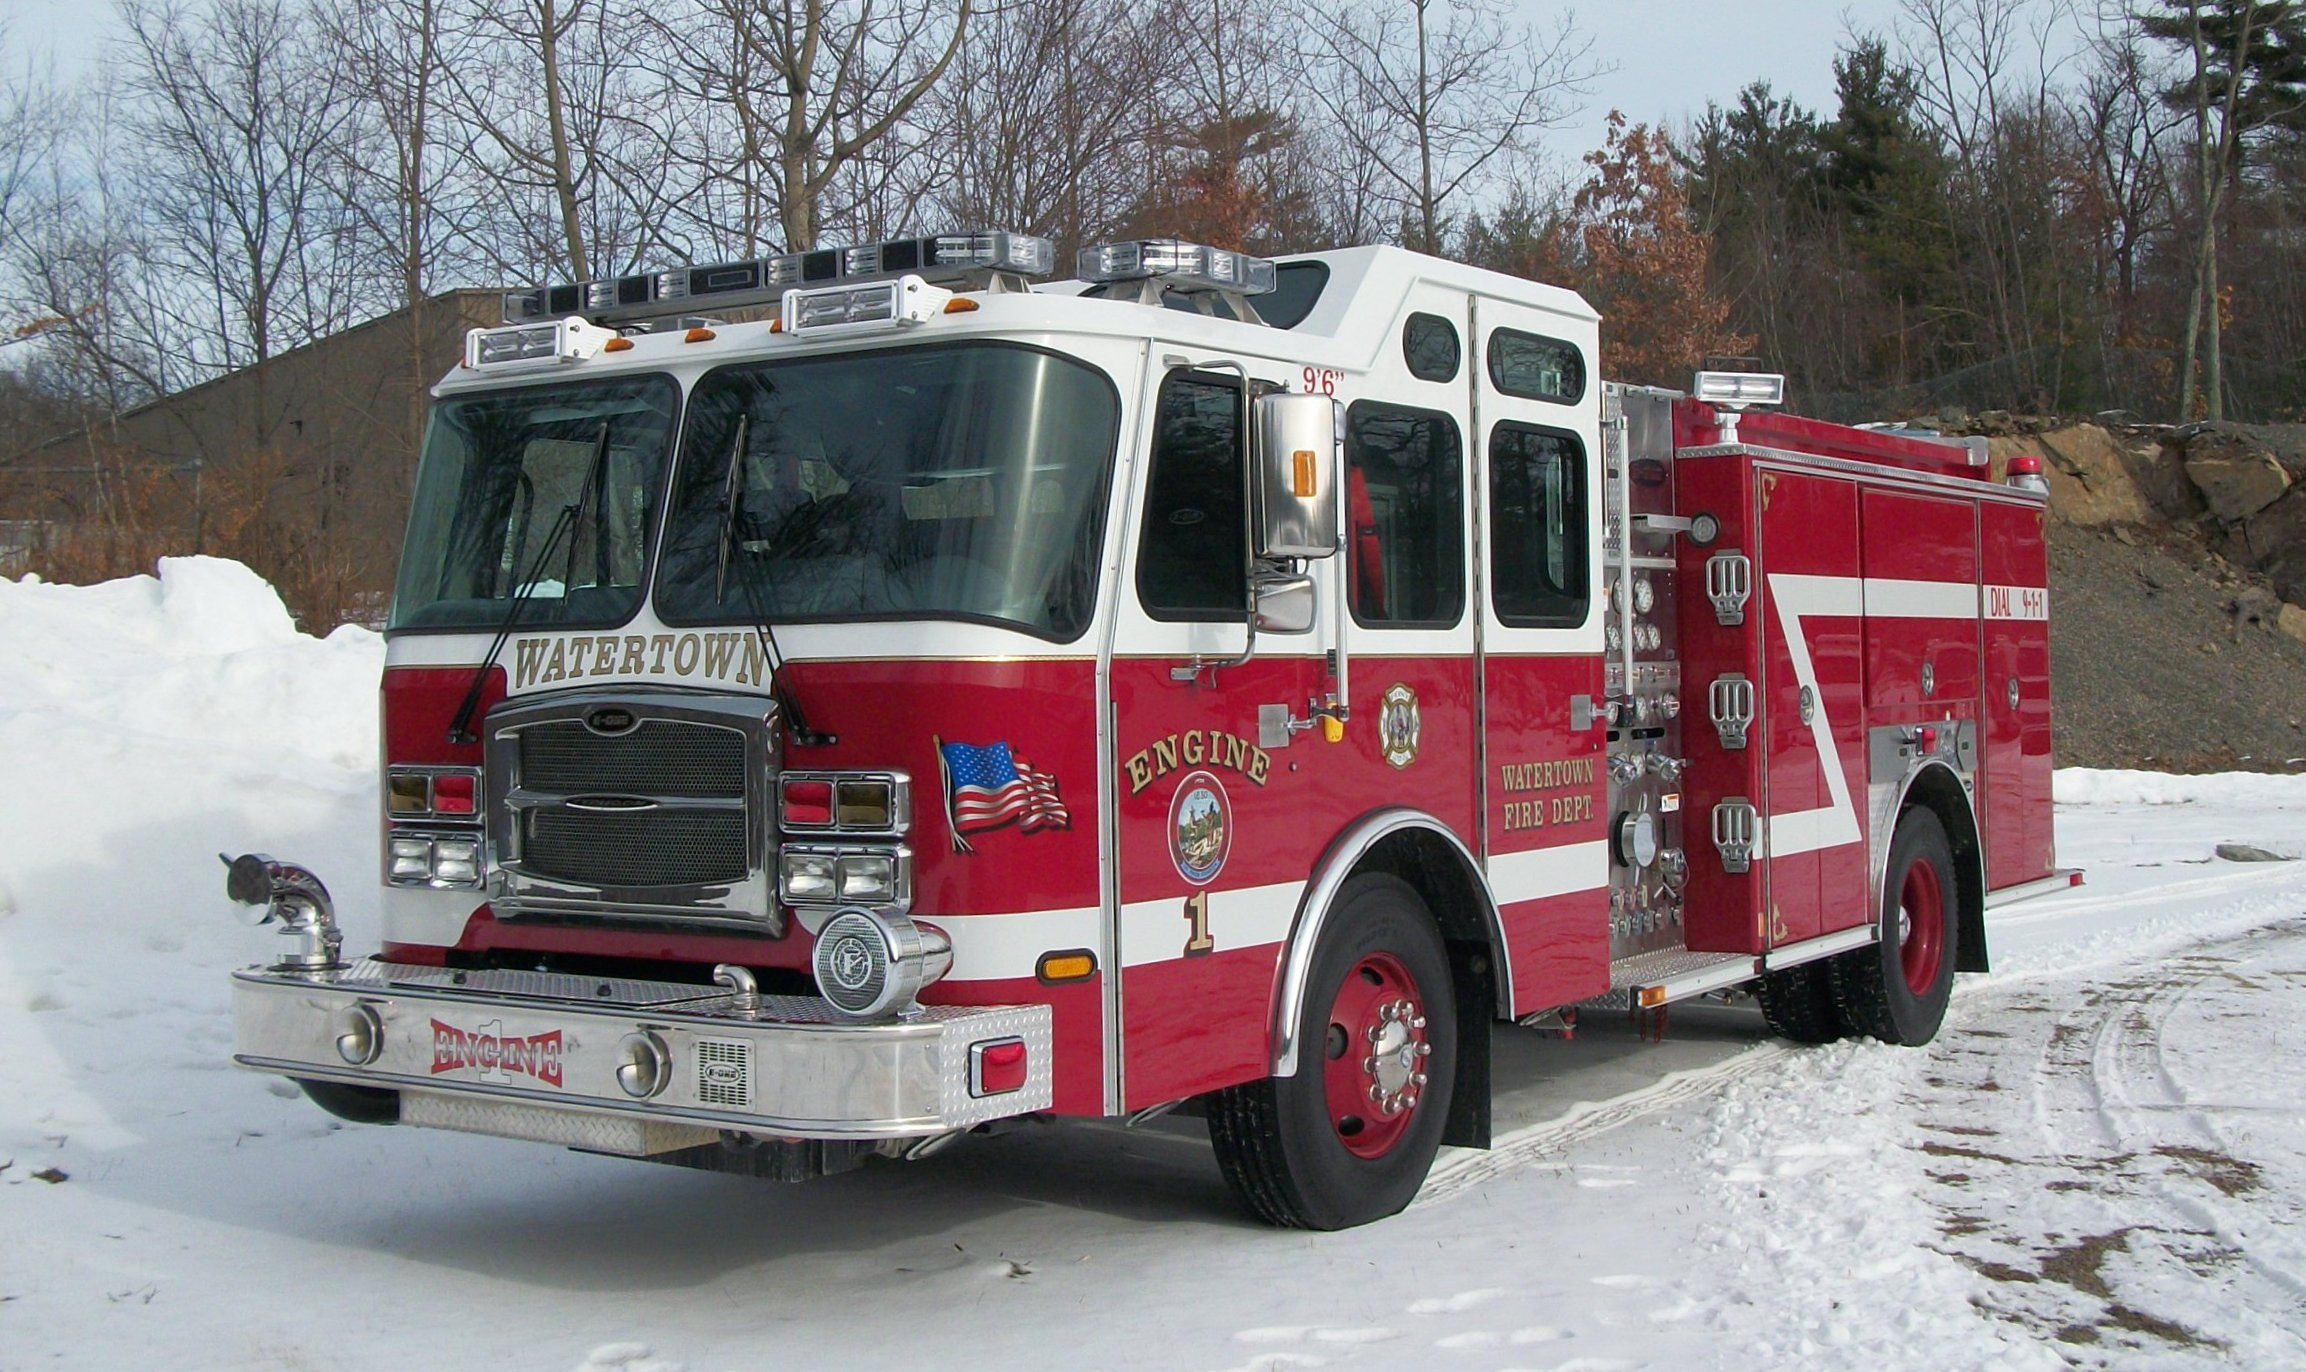 Watertown Fire Department Ma Engine One 2011 Emergency One Typhoon 1250 Gallons Per Minute Pumper Http Setcomco Fire Trucks Fire Apparatus Fire Department